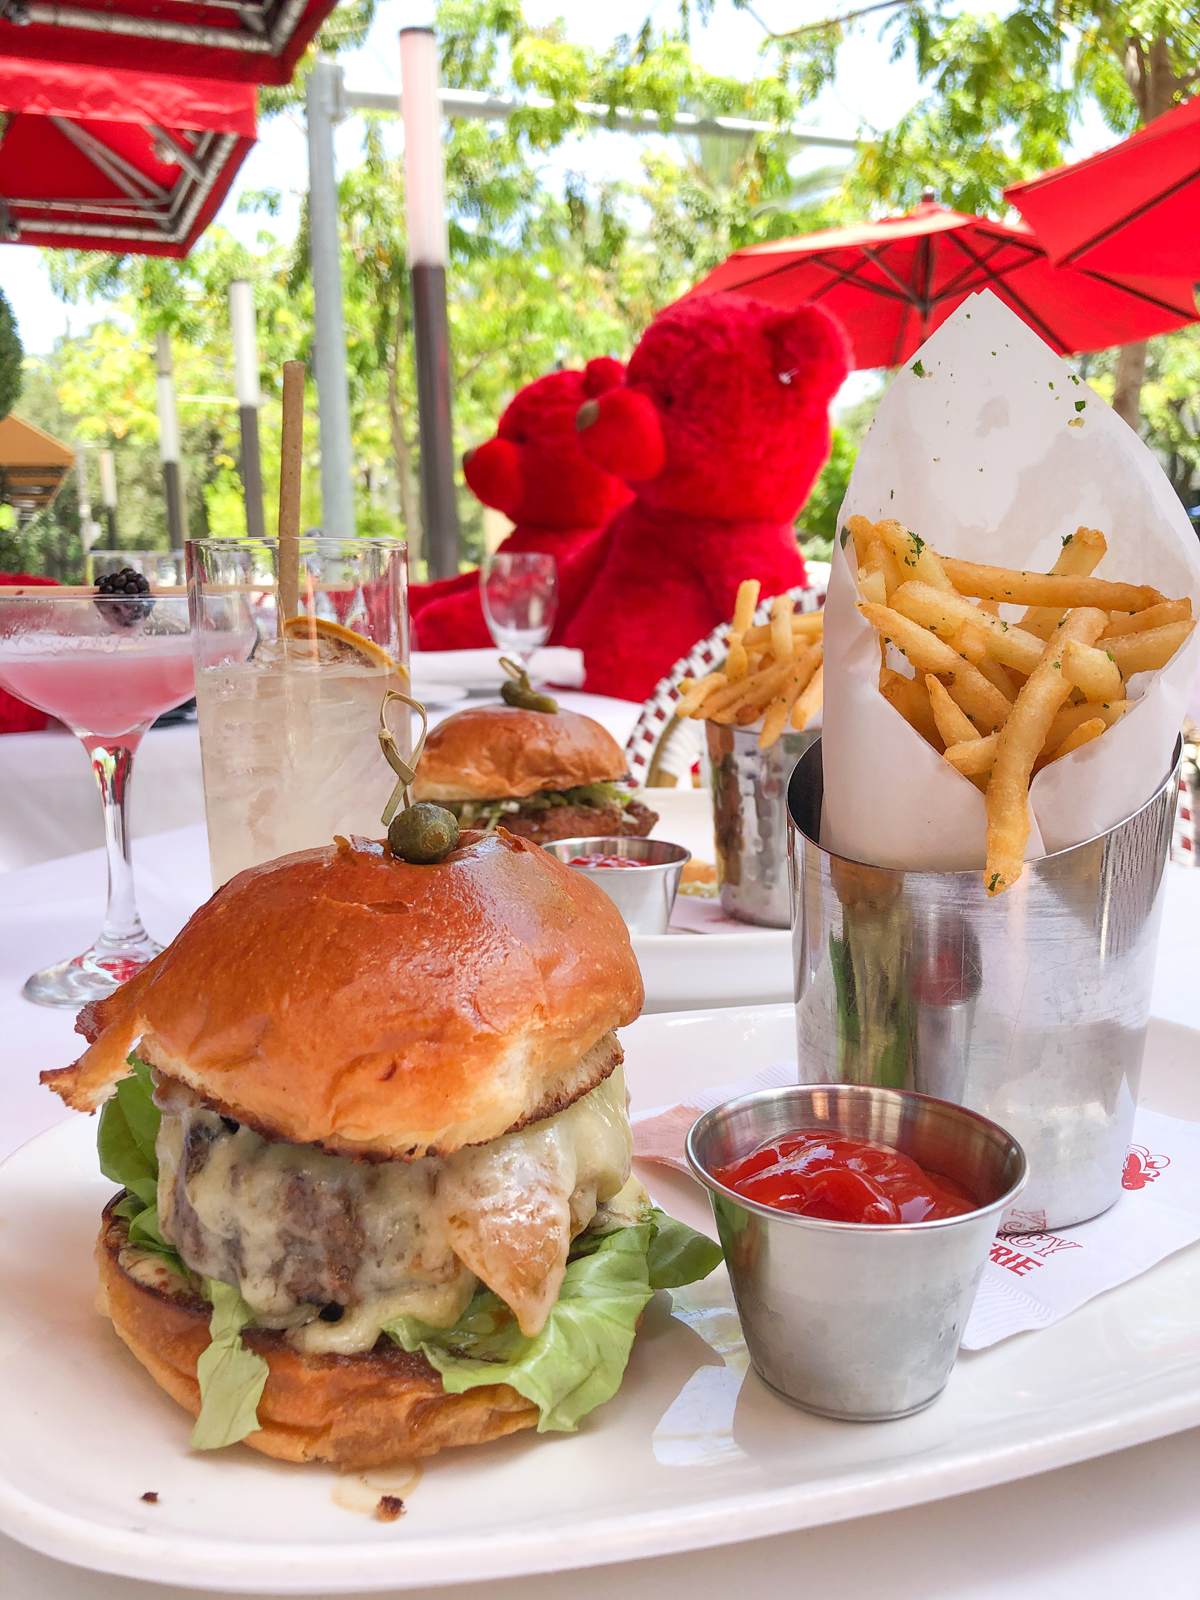 The Gramercy New Restaurant in Coral Gables burger wuth waguy beef